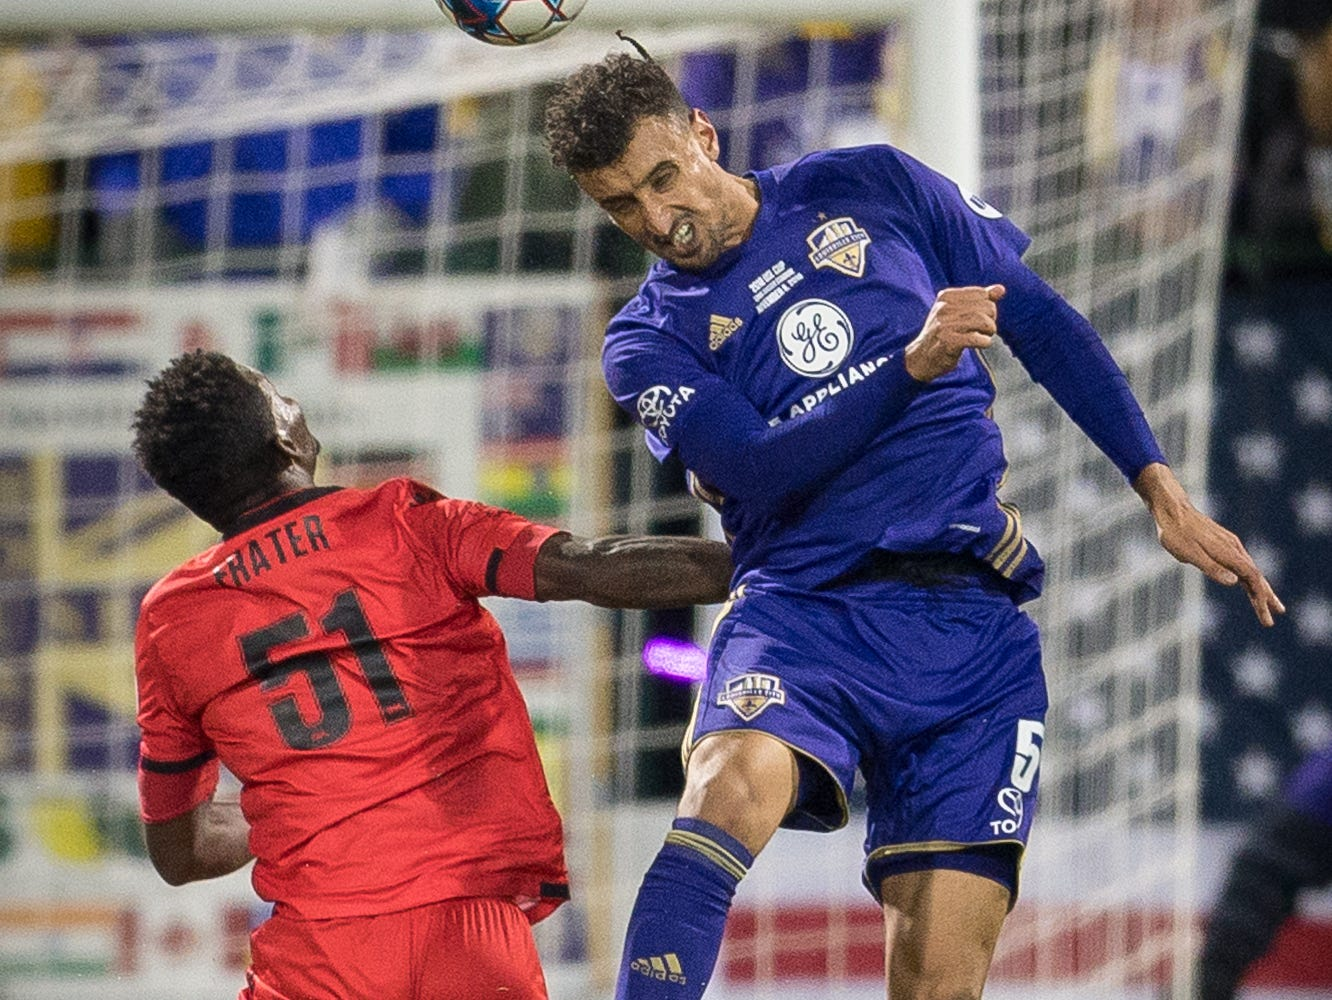 Louisville City FC defender Paco Craig (5) collides with Phoenix Rising FC forward Kevaughn Frater (51) during the first half of the USL Cup final played at Lynn Stadium on the campus of the University of Louisville, Louisville, Ky., Thursday, Nov., 8, 2018. (PHOTO Bryan Woolston)